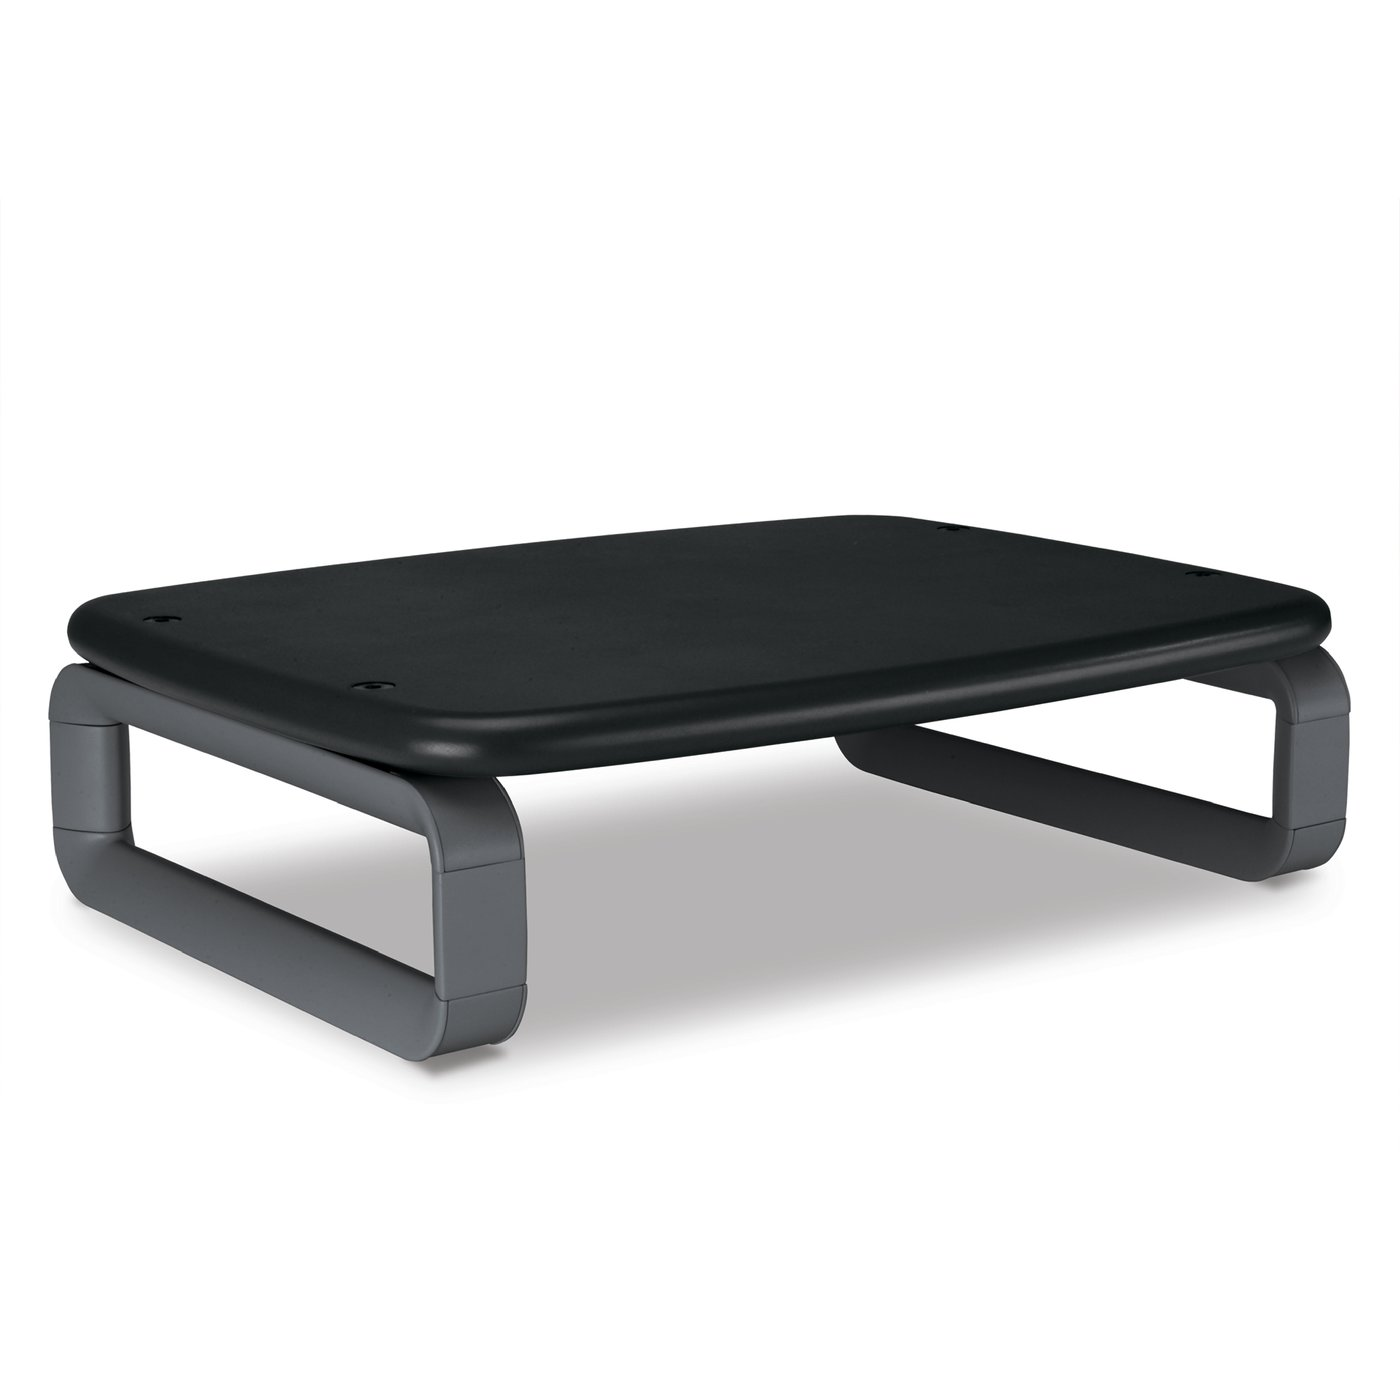 Kensington Products Ergonomics Laptop Risers